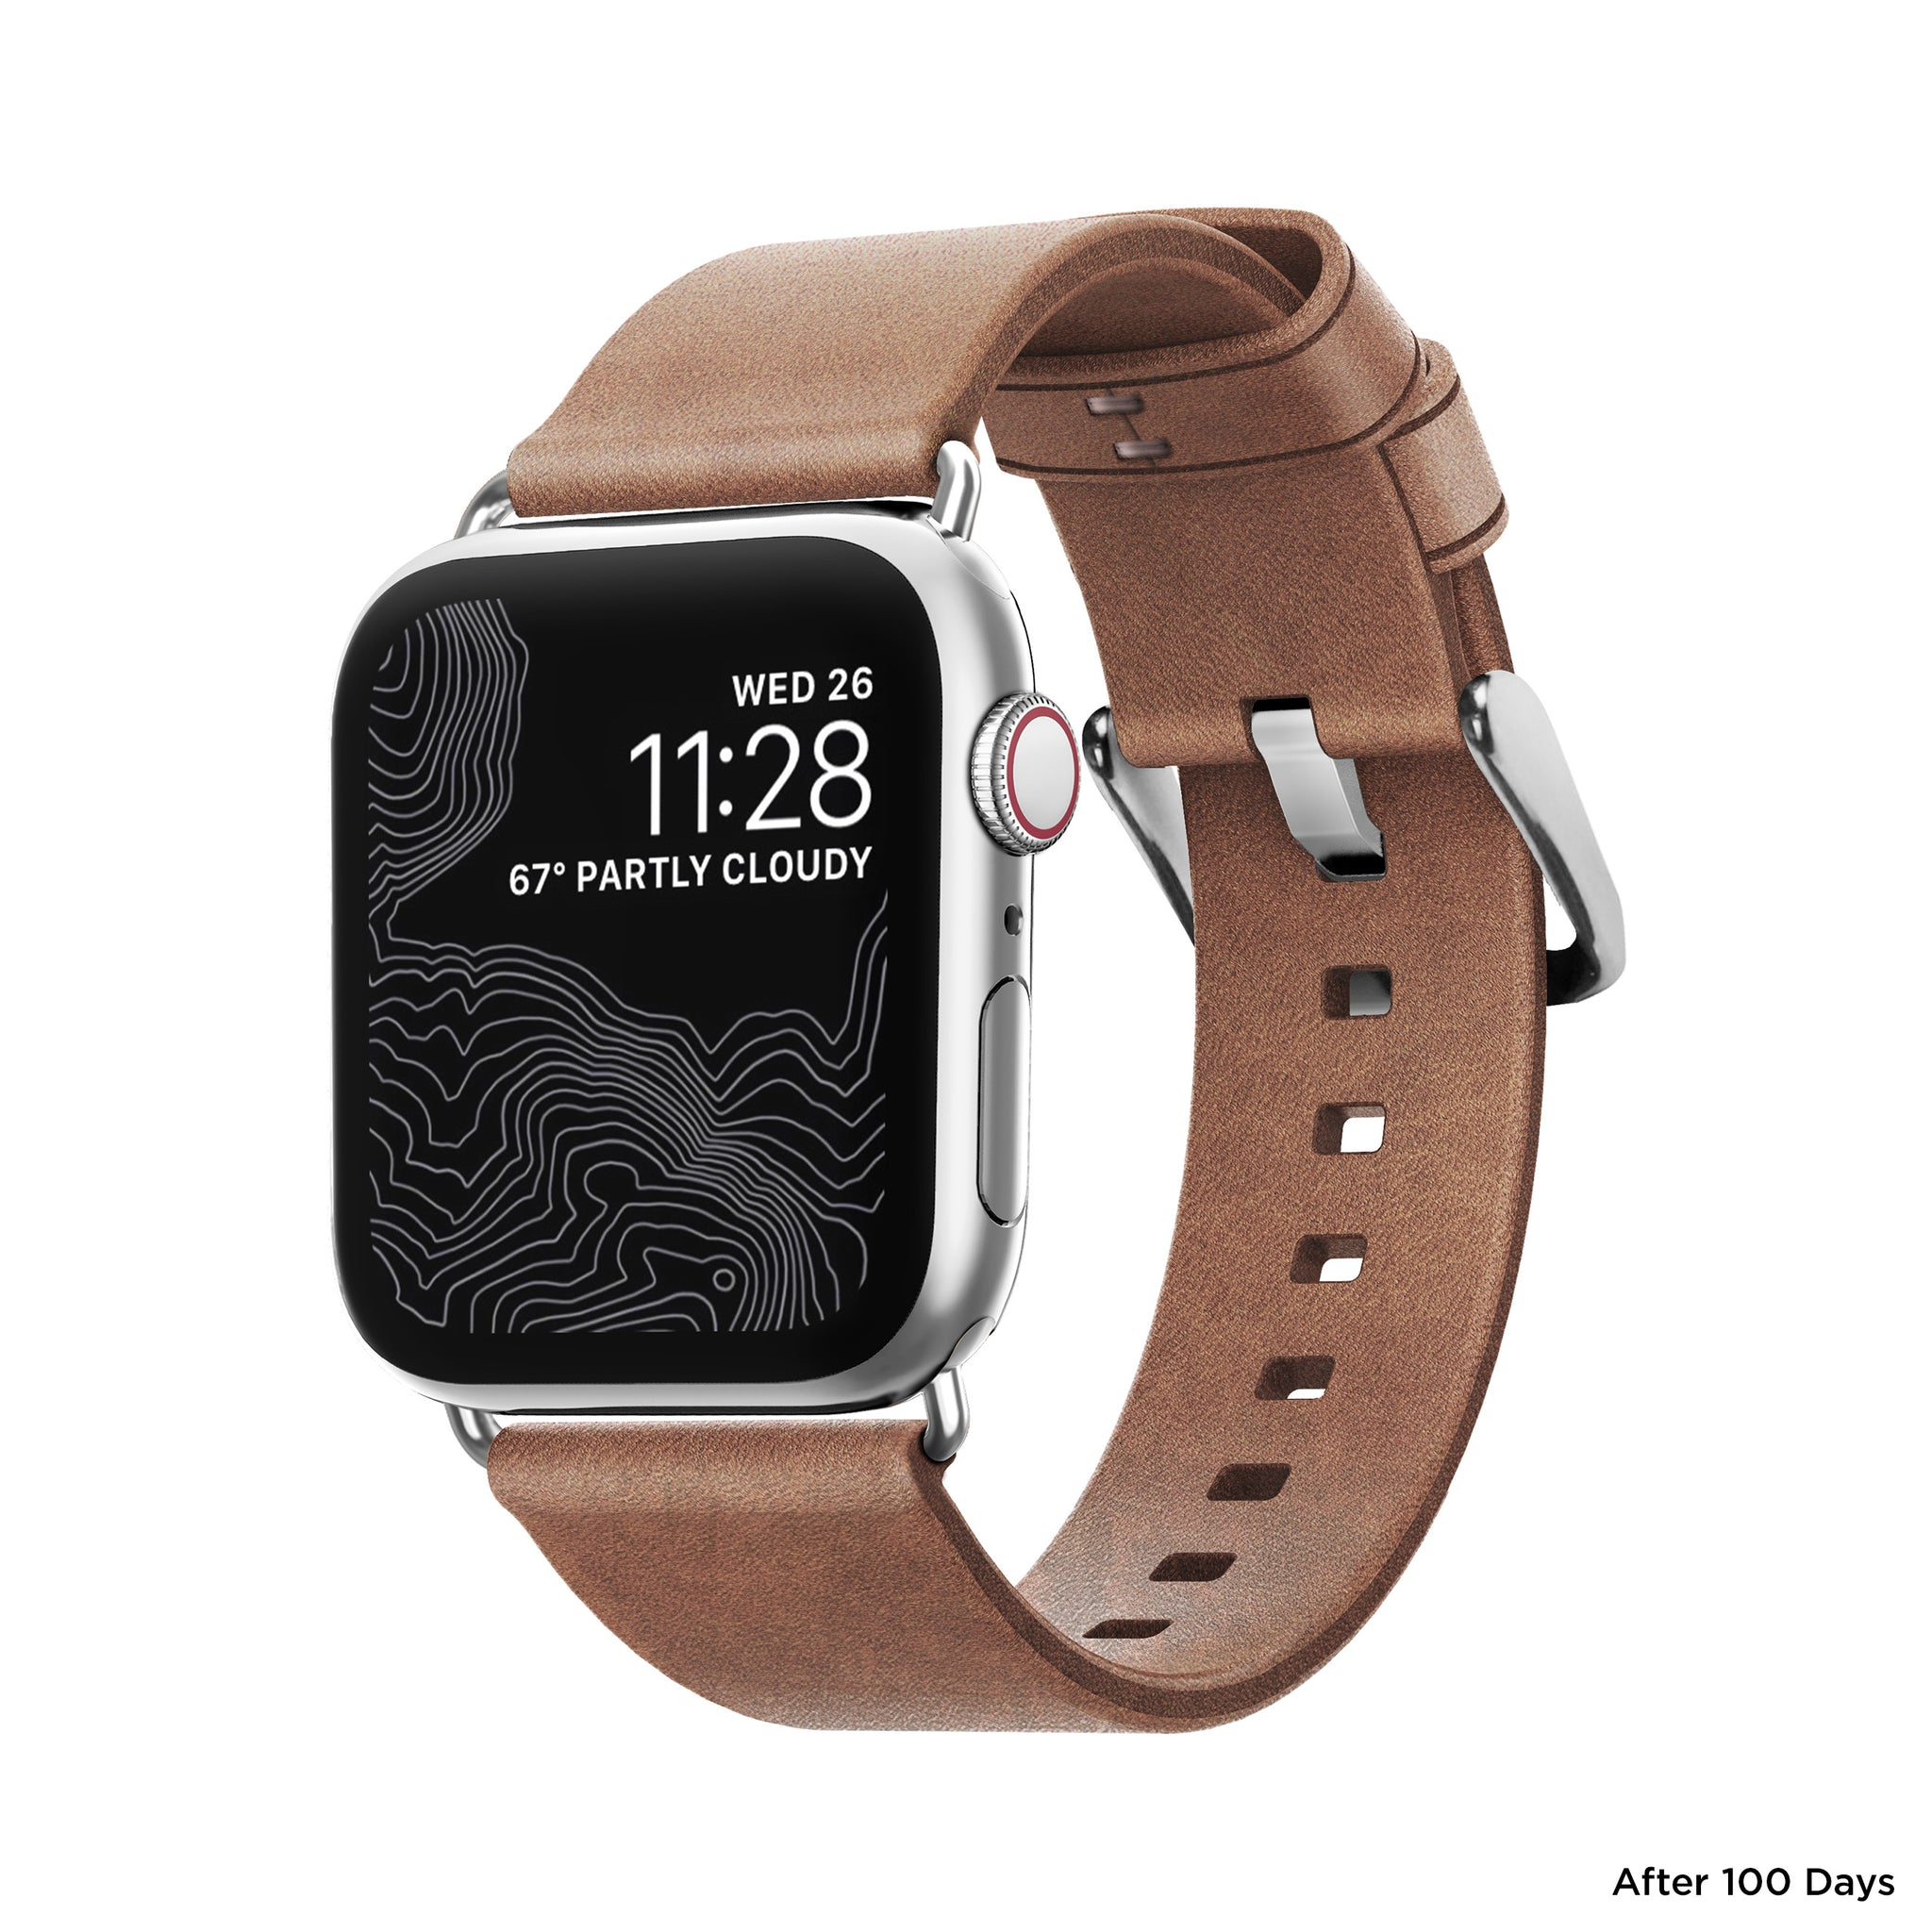 Nomad Modern Leather Strap for Apple Watch - Natural / Silver Hardware